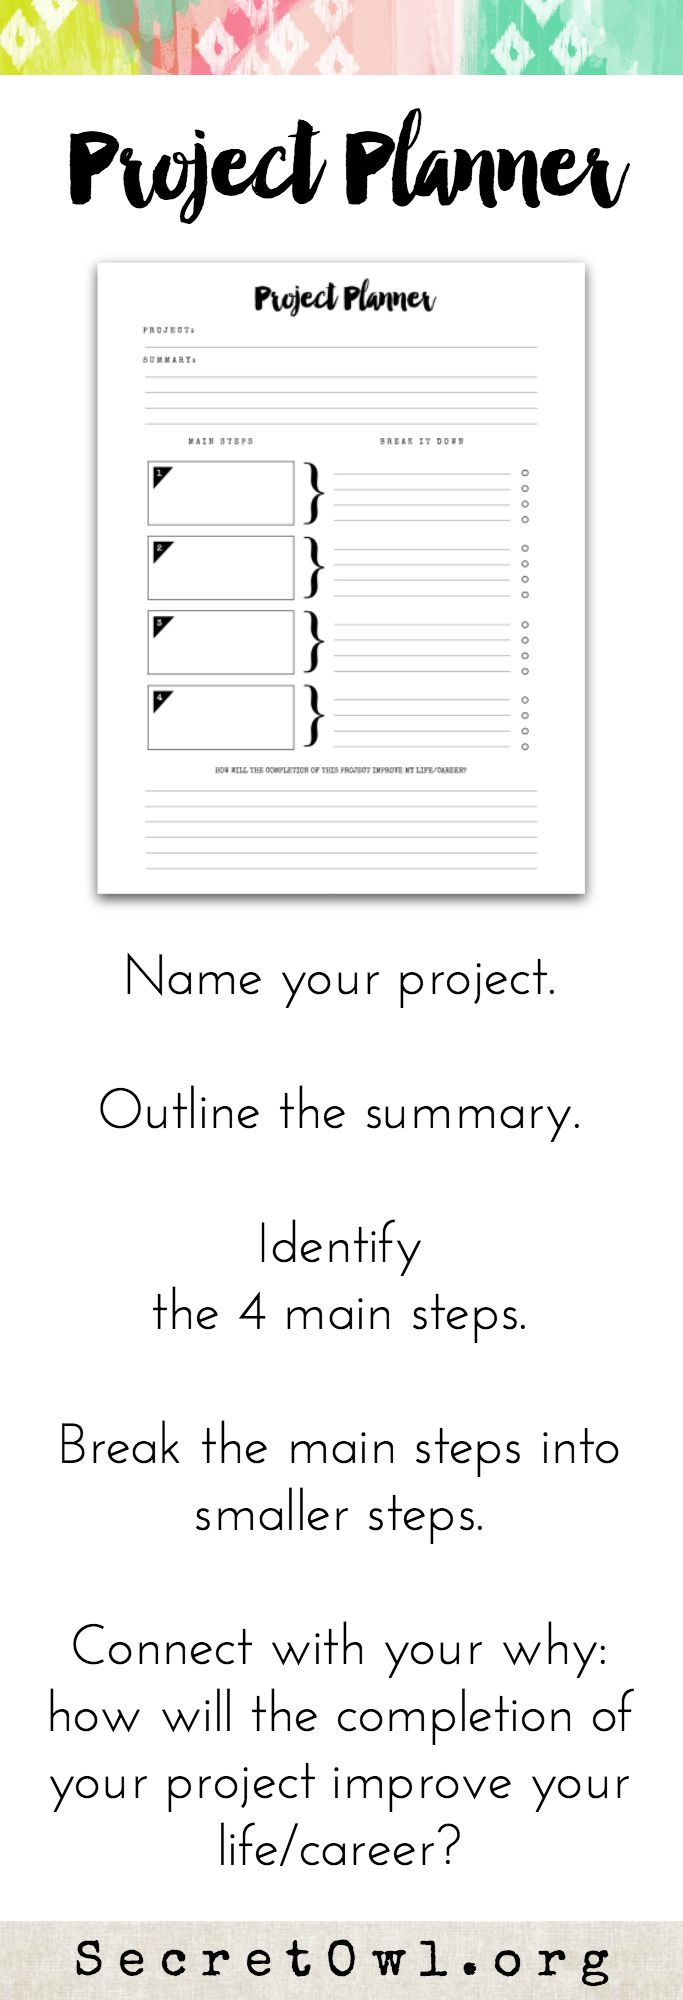 Great 1 Page Resume Format Huge 1 Page Resume Templates Flat 10 Steps To Creating An Effective Resume 11x17 Graph Paper Template Youthful 18th Birthday Invitation Templates Fresh2 Month Calendar Template 25  Best Ideas About Goal Planning On Pinterest | Organizational ..